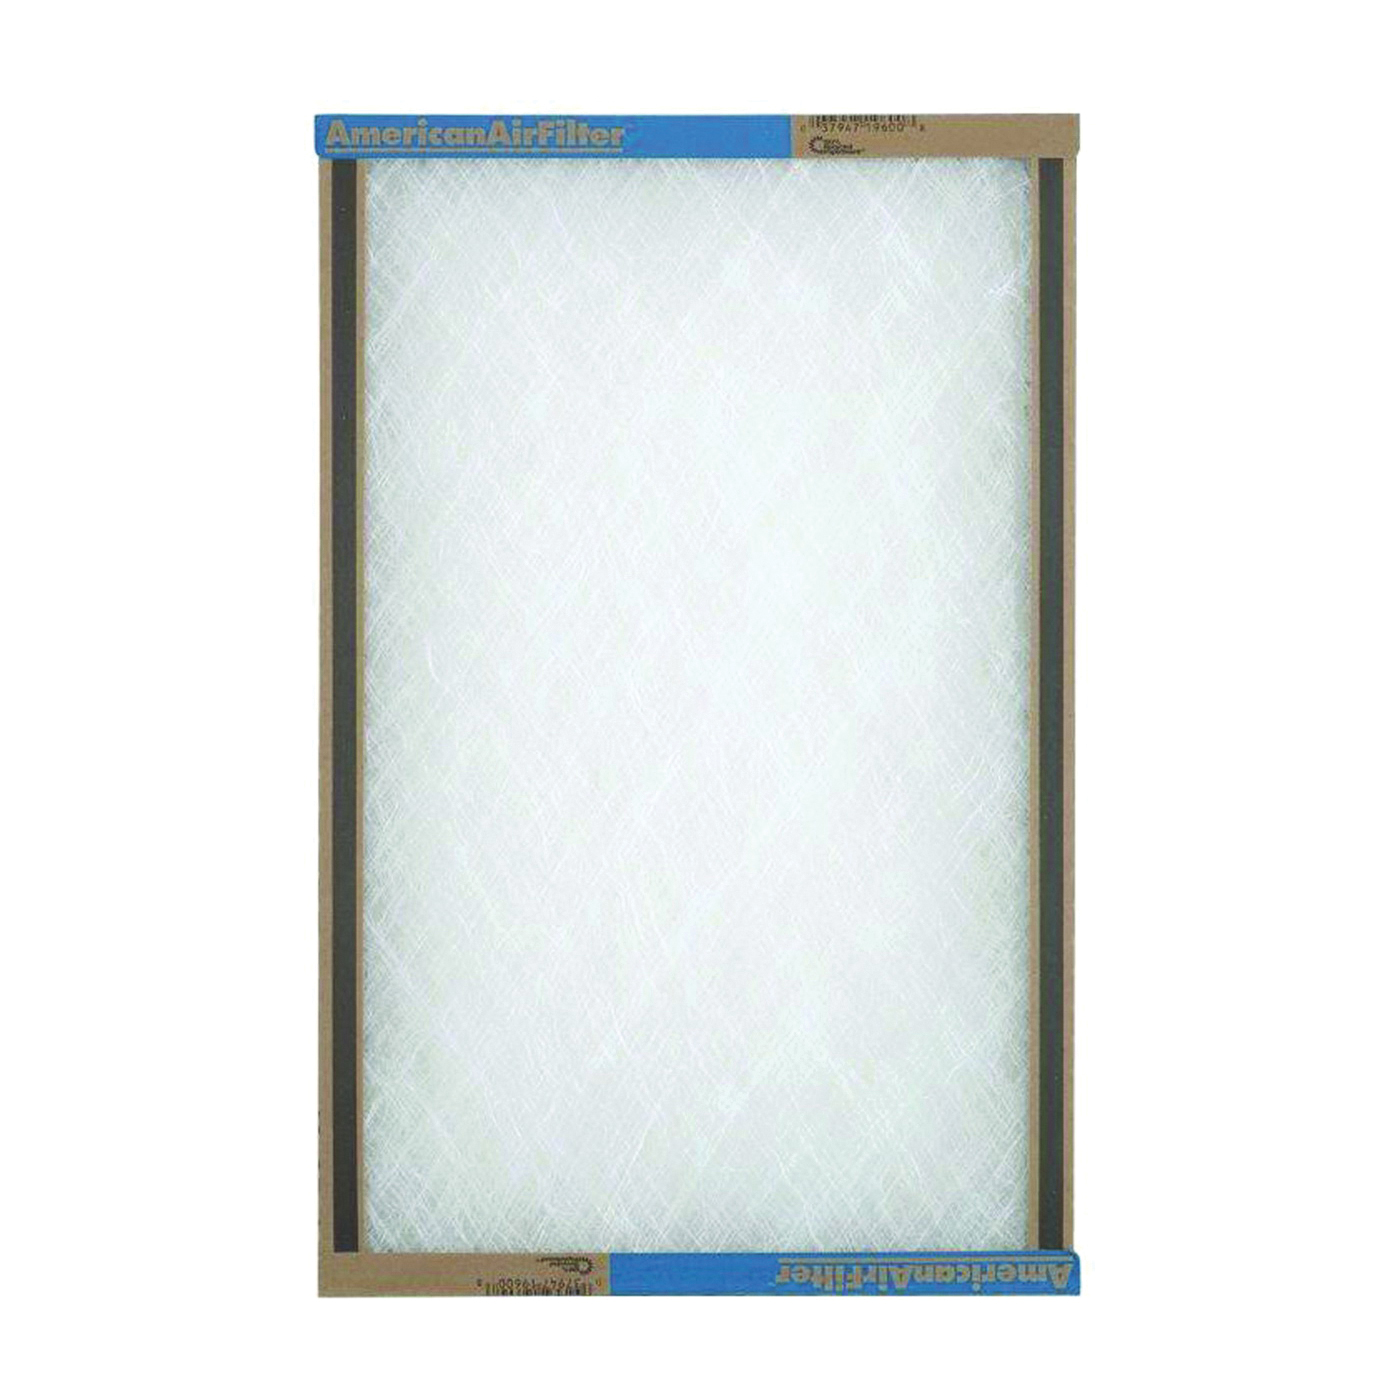 Picture of AAF 124241 Panel Filter, 24 in L, 24 in W, Chipboard Frame